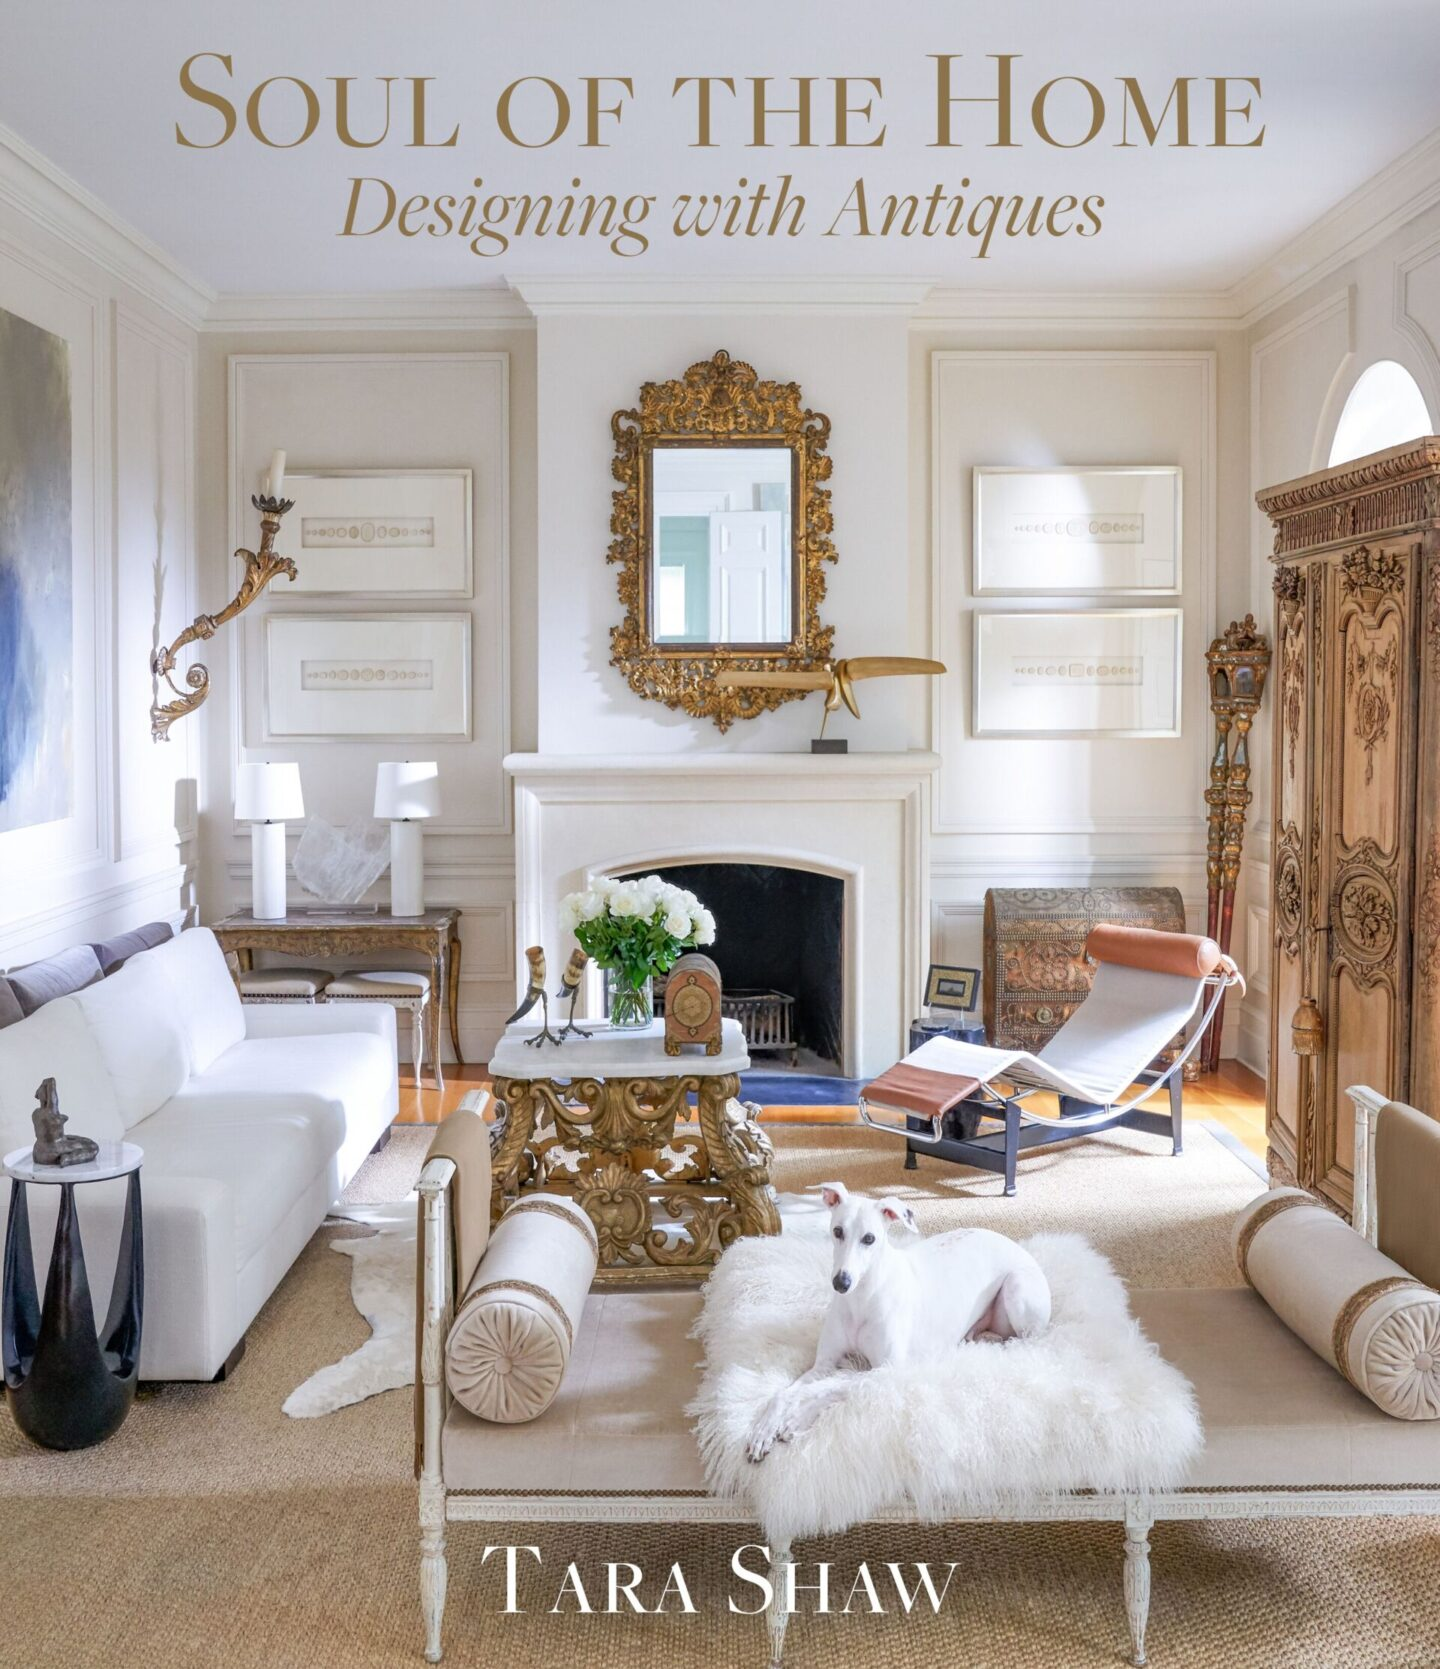 Tara Shaw The Soul of a Home book cover. #tarashaw #soulofthehome #designingwithantiques #designbook #interiordesign